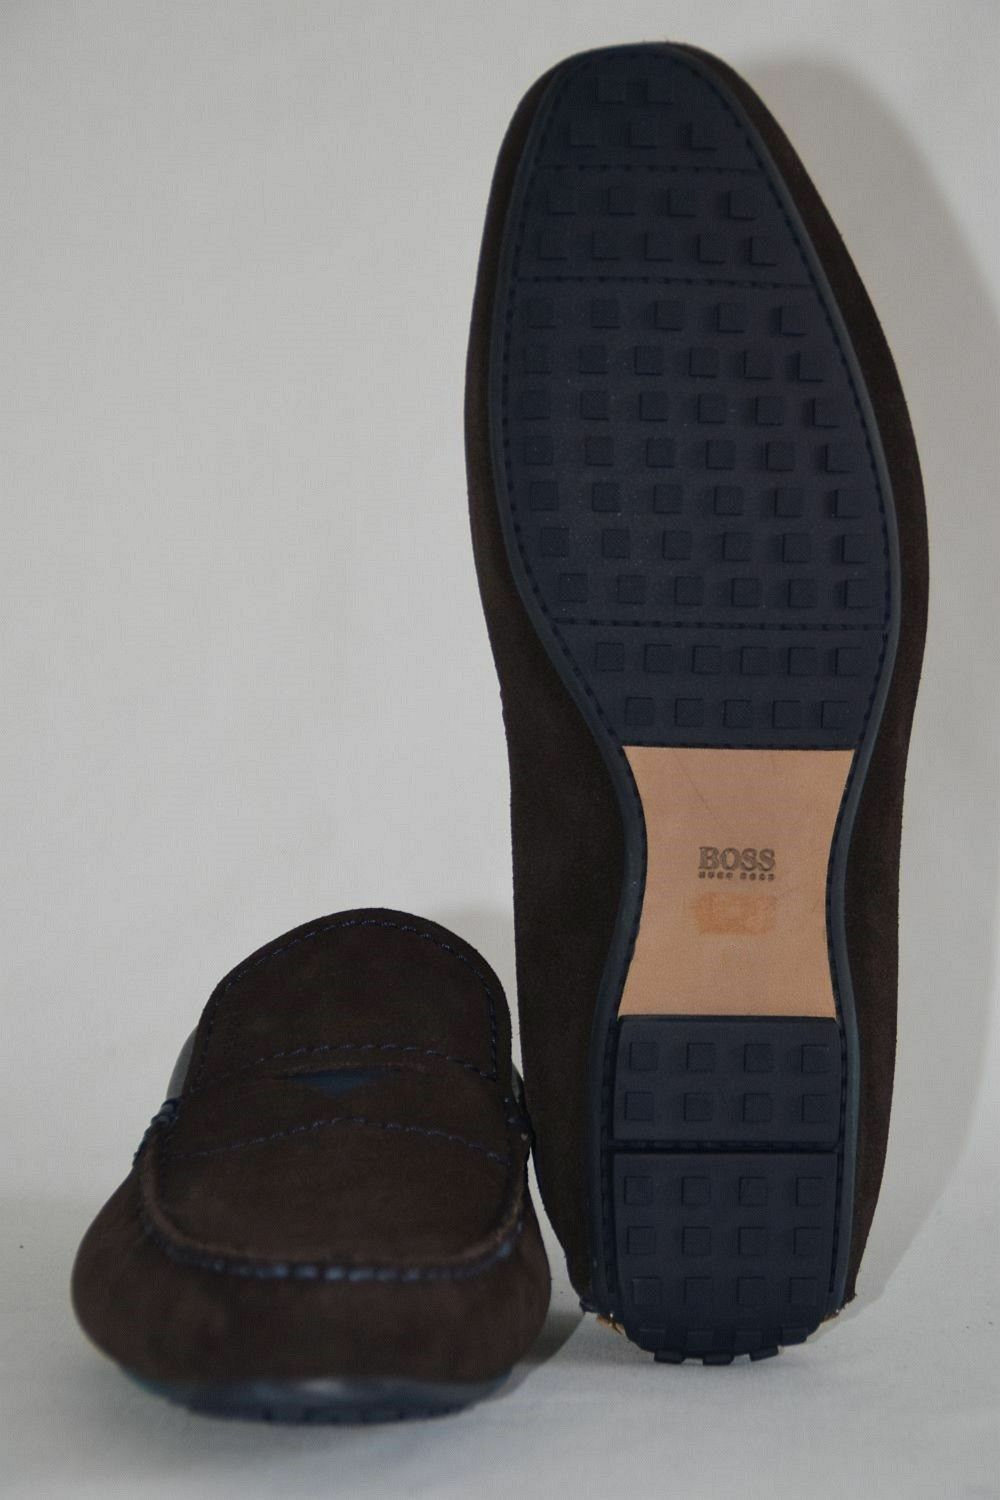 HUGO BOSS MOKASSINS, Gr. EU 43 / UK 9 / / 9 US 10,   , Dark Braun 460ba7